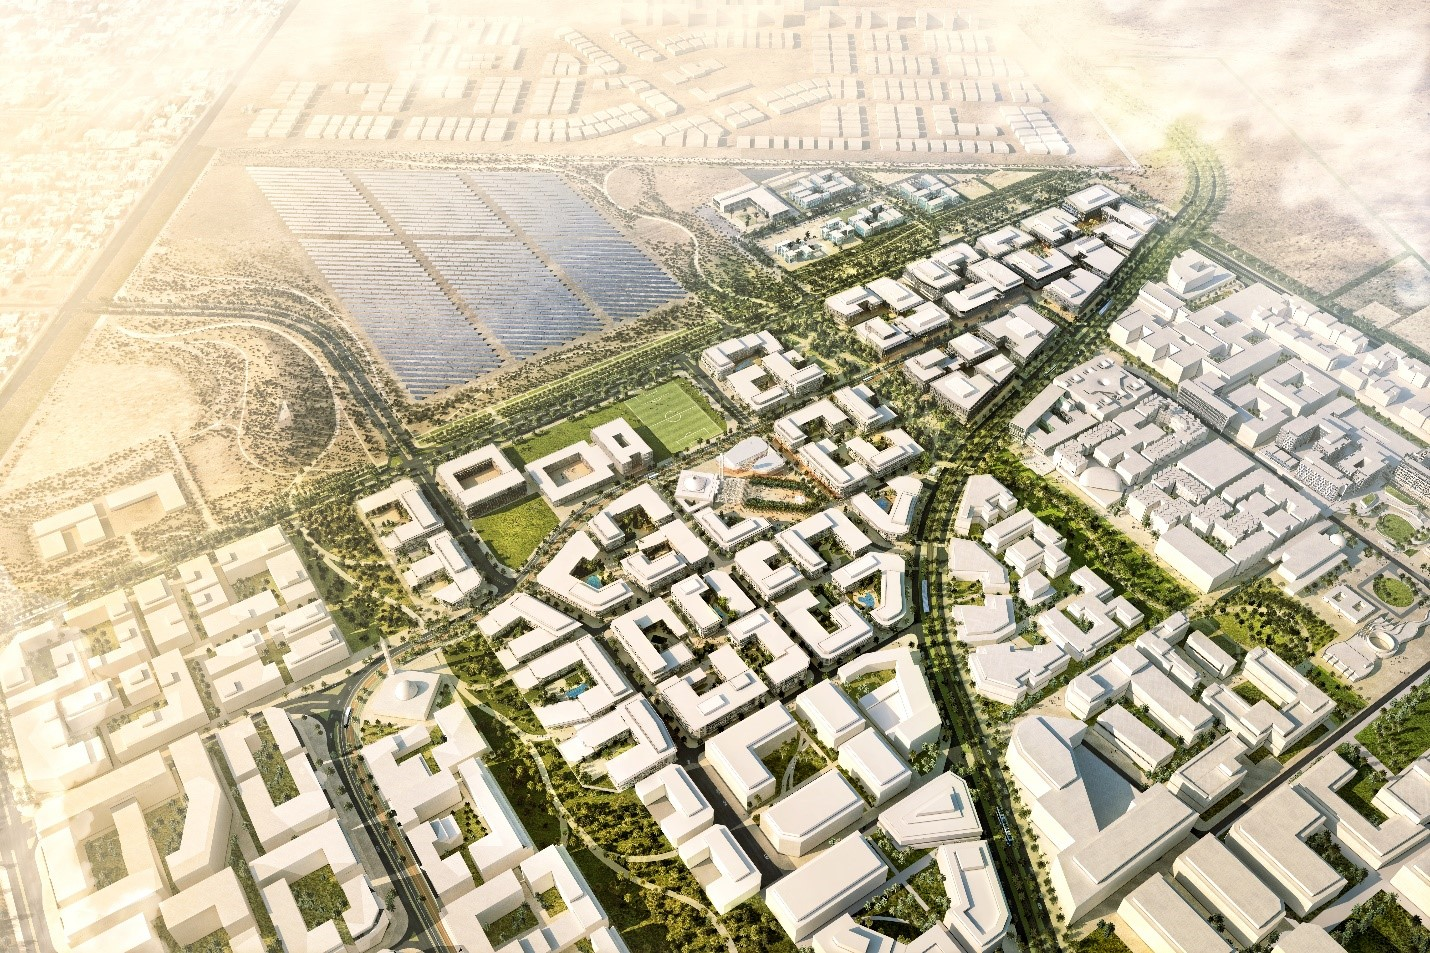 The magical evolution of Masdar City. Credit: CBT